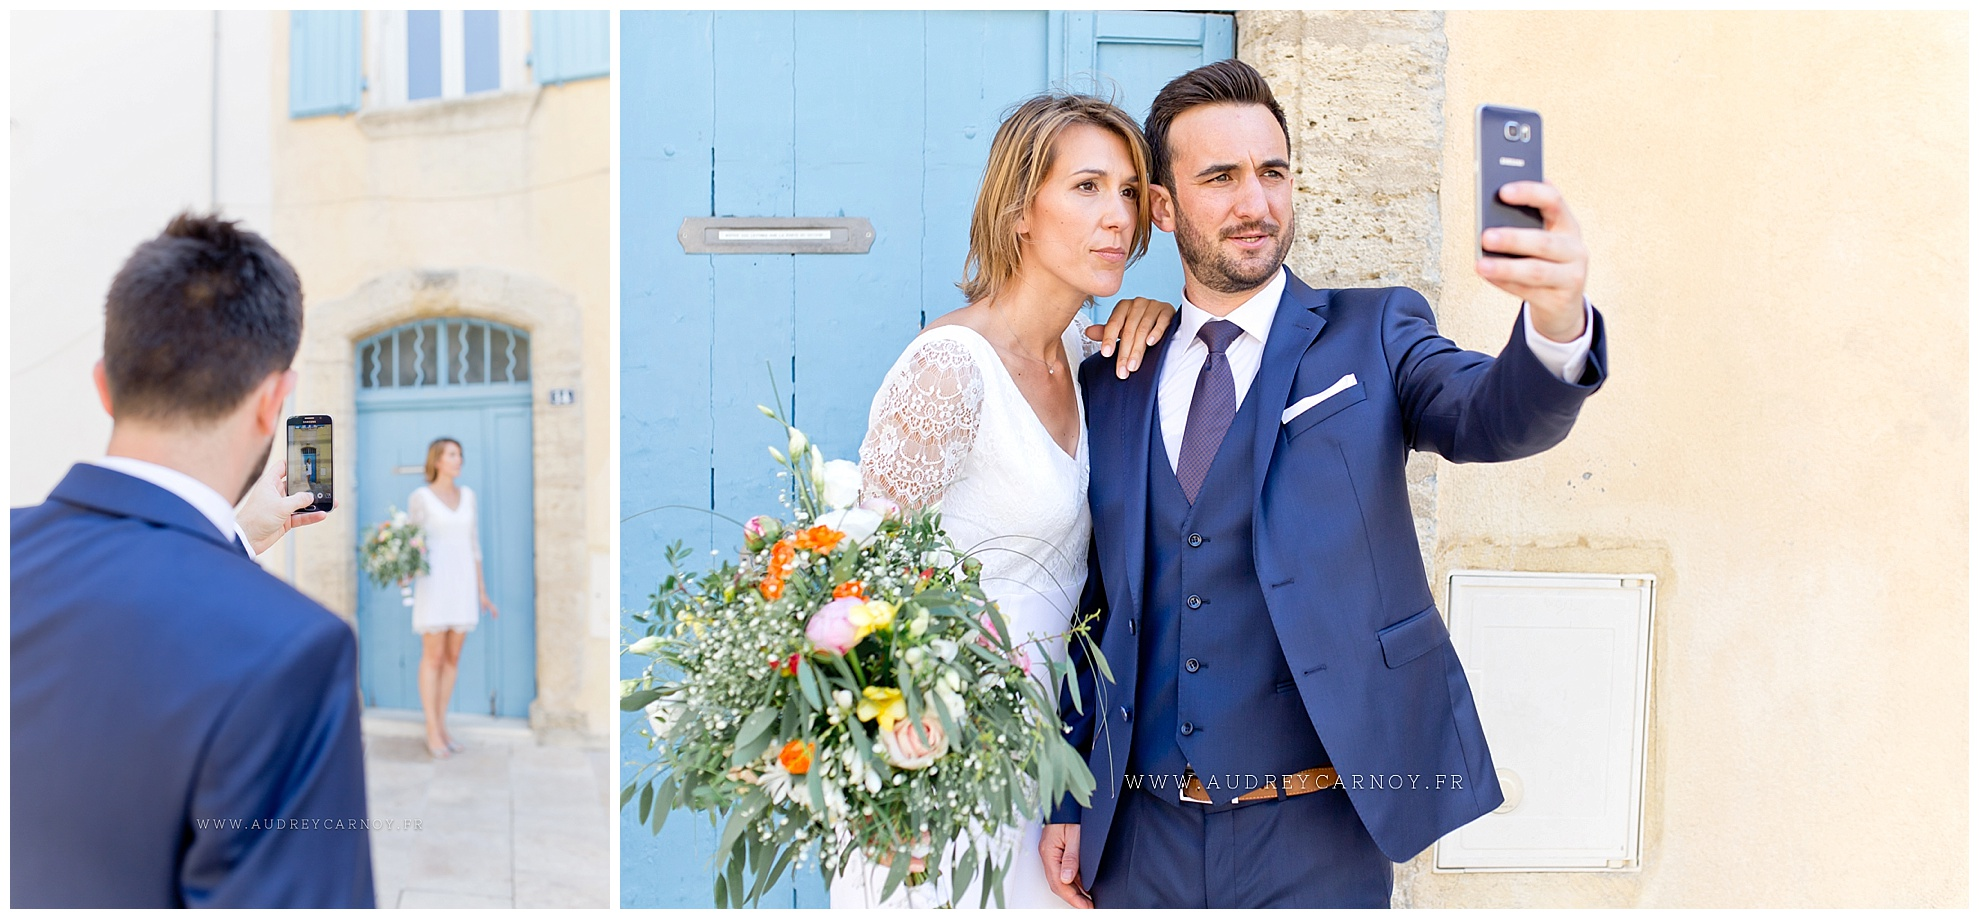 Mariage Pertuis | Laurence & Anthony 16